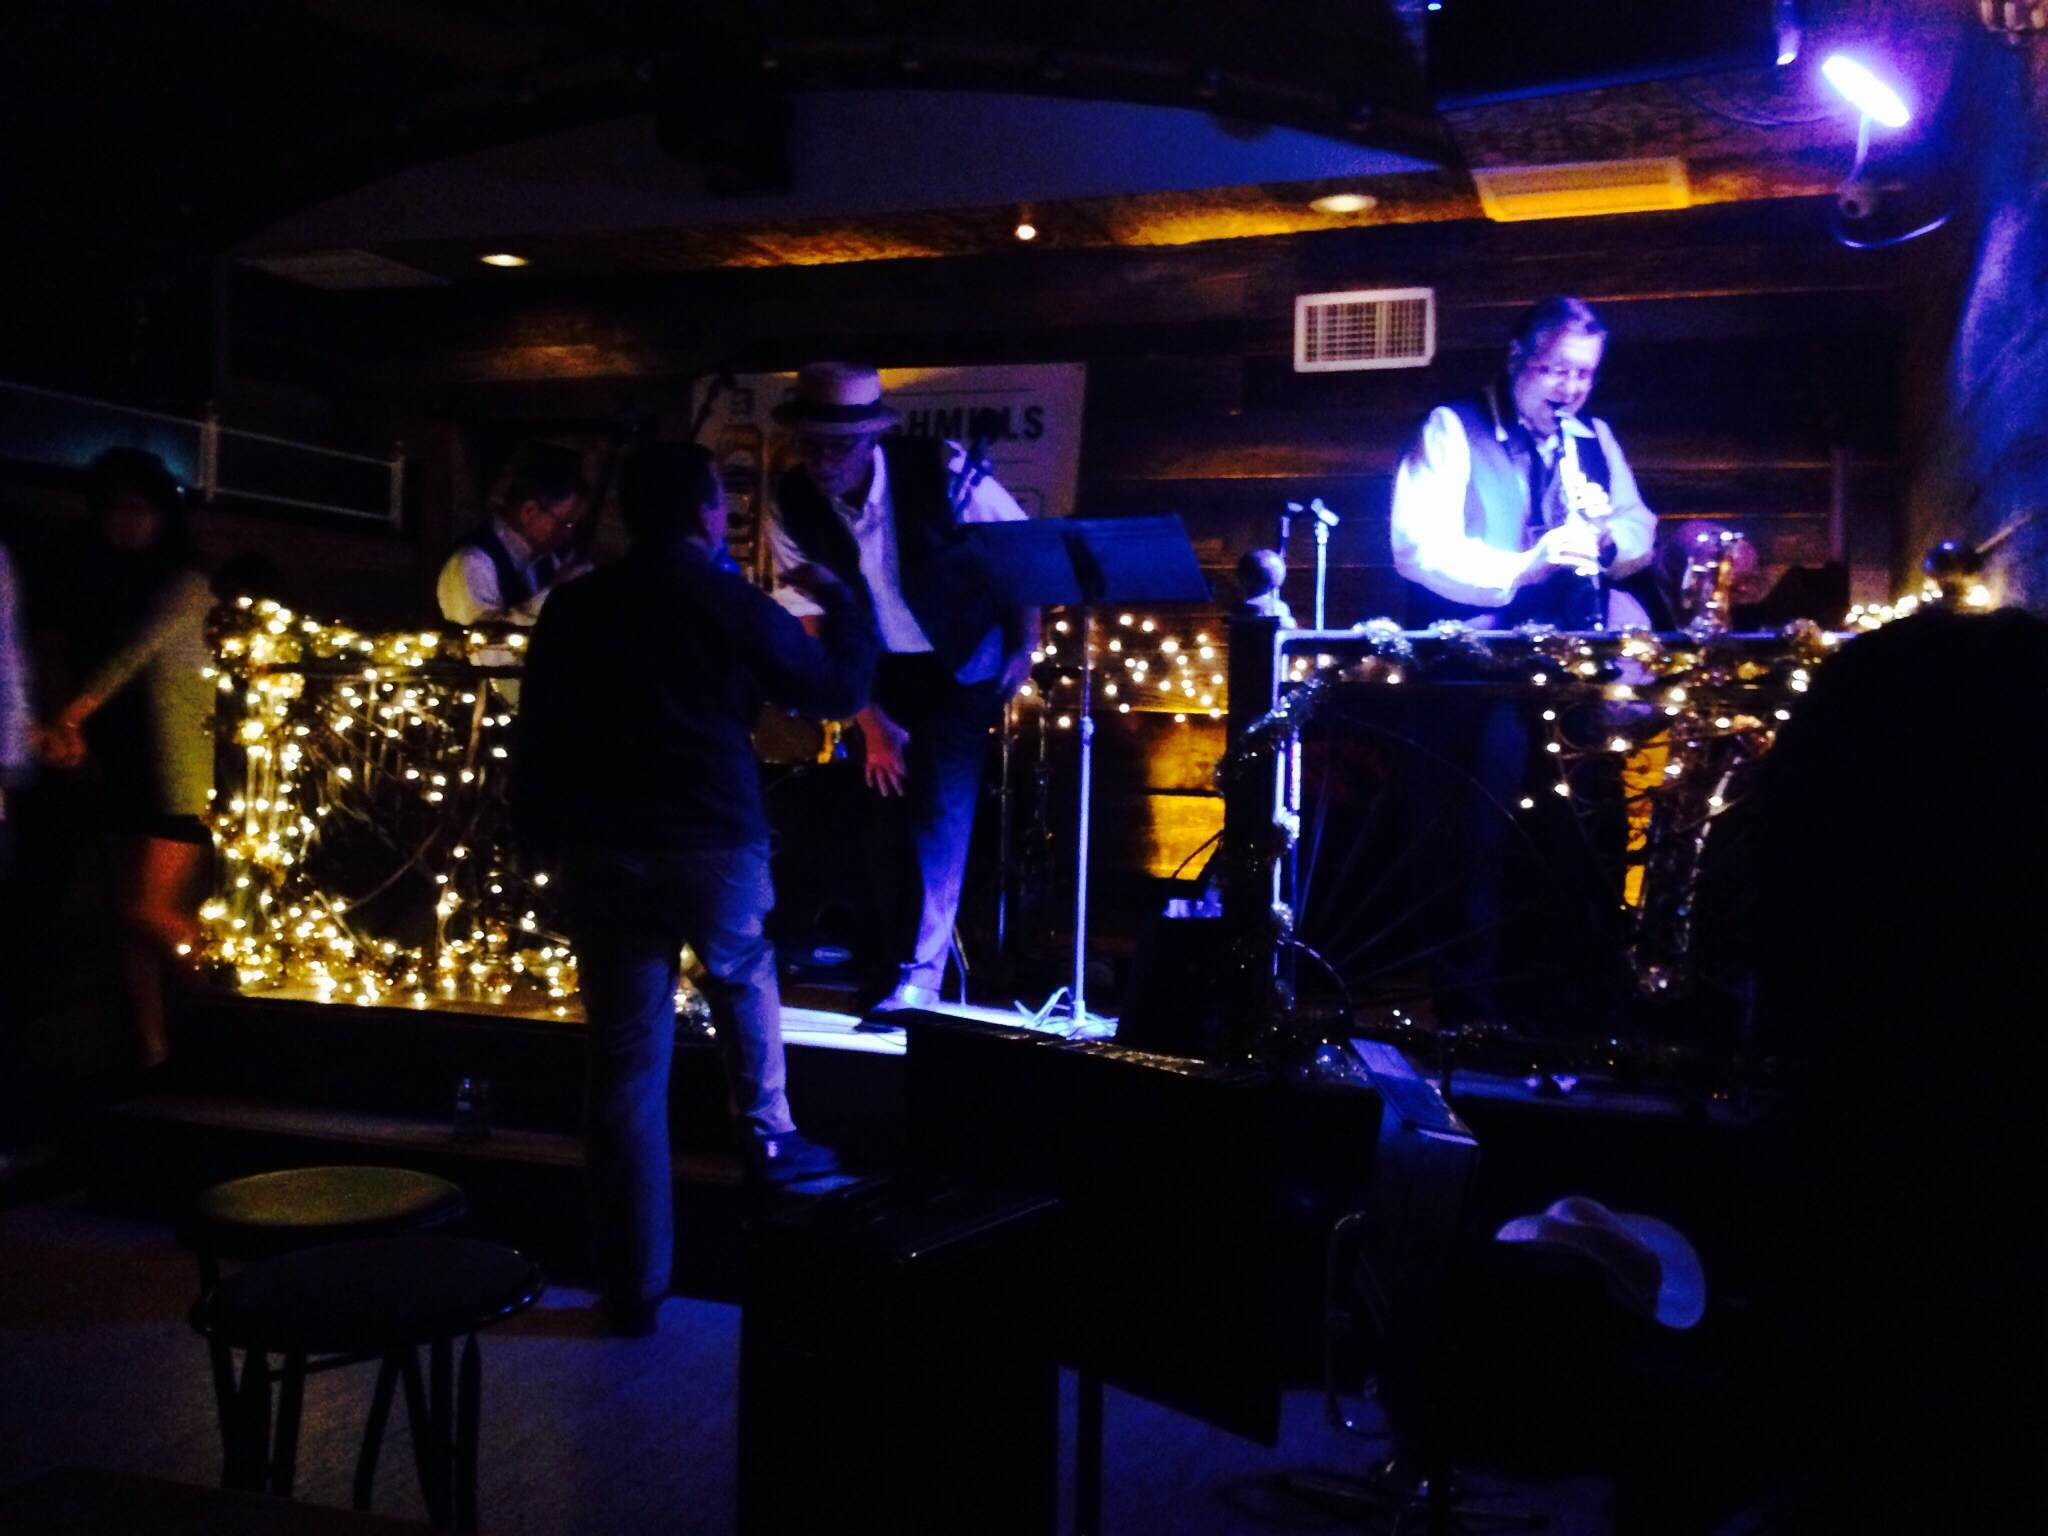 6 - Dixieland jazz at Prohibition